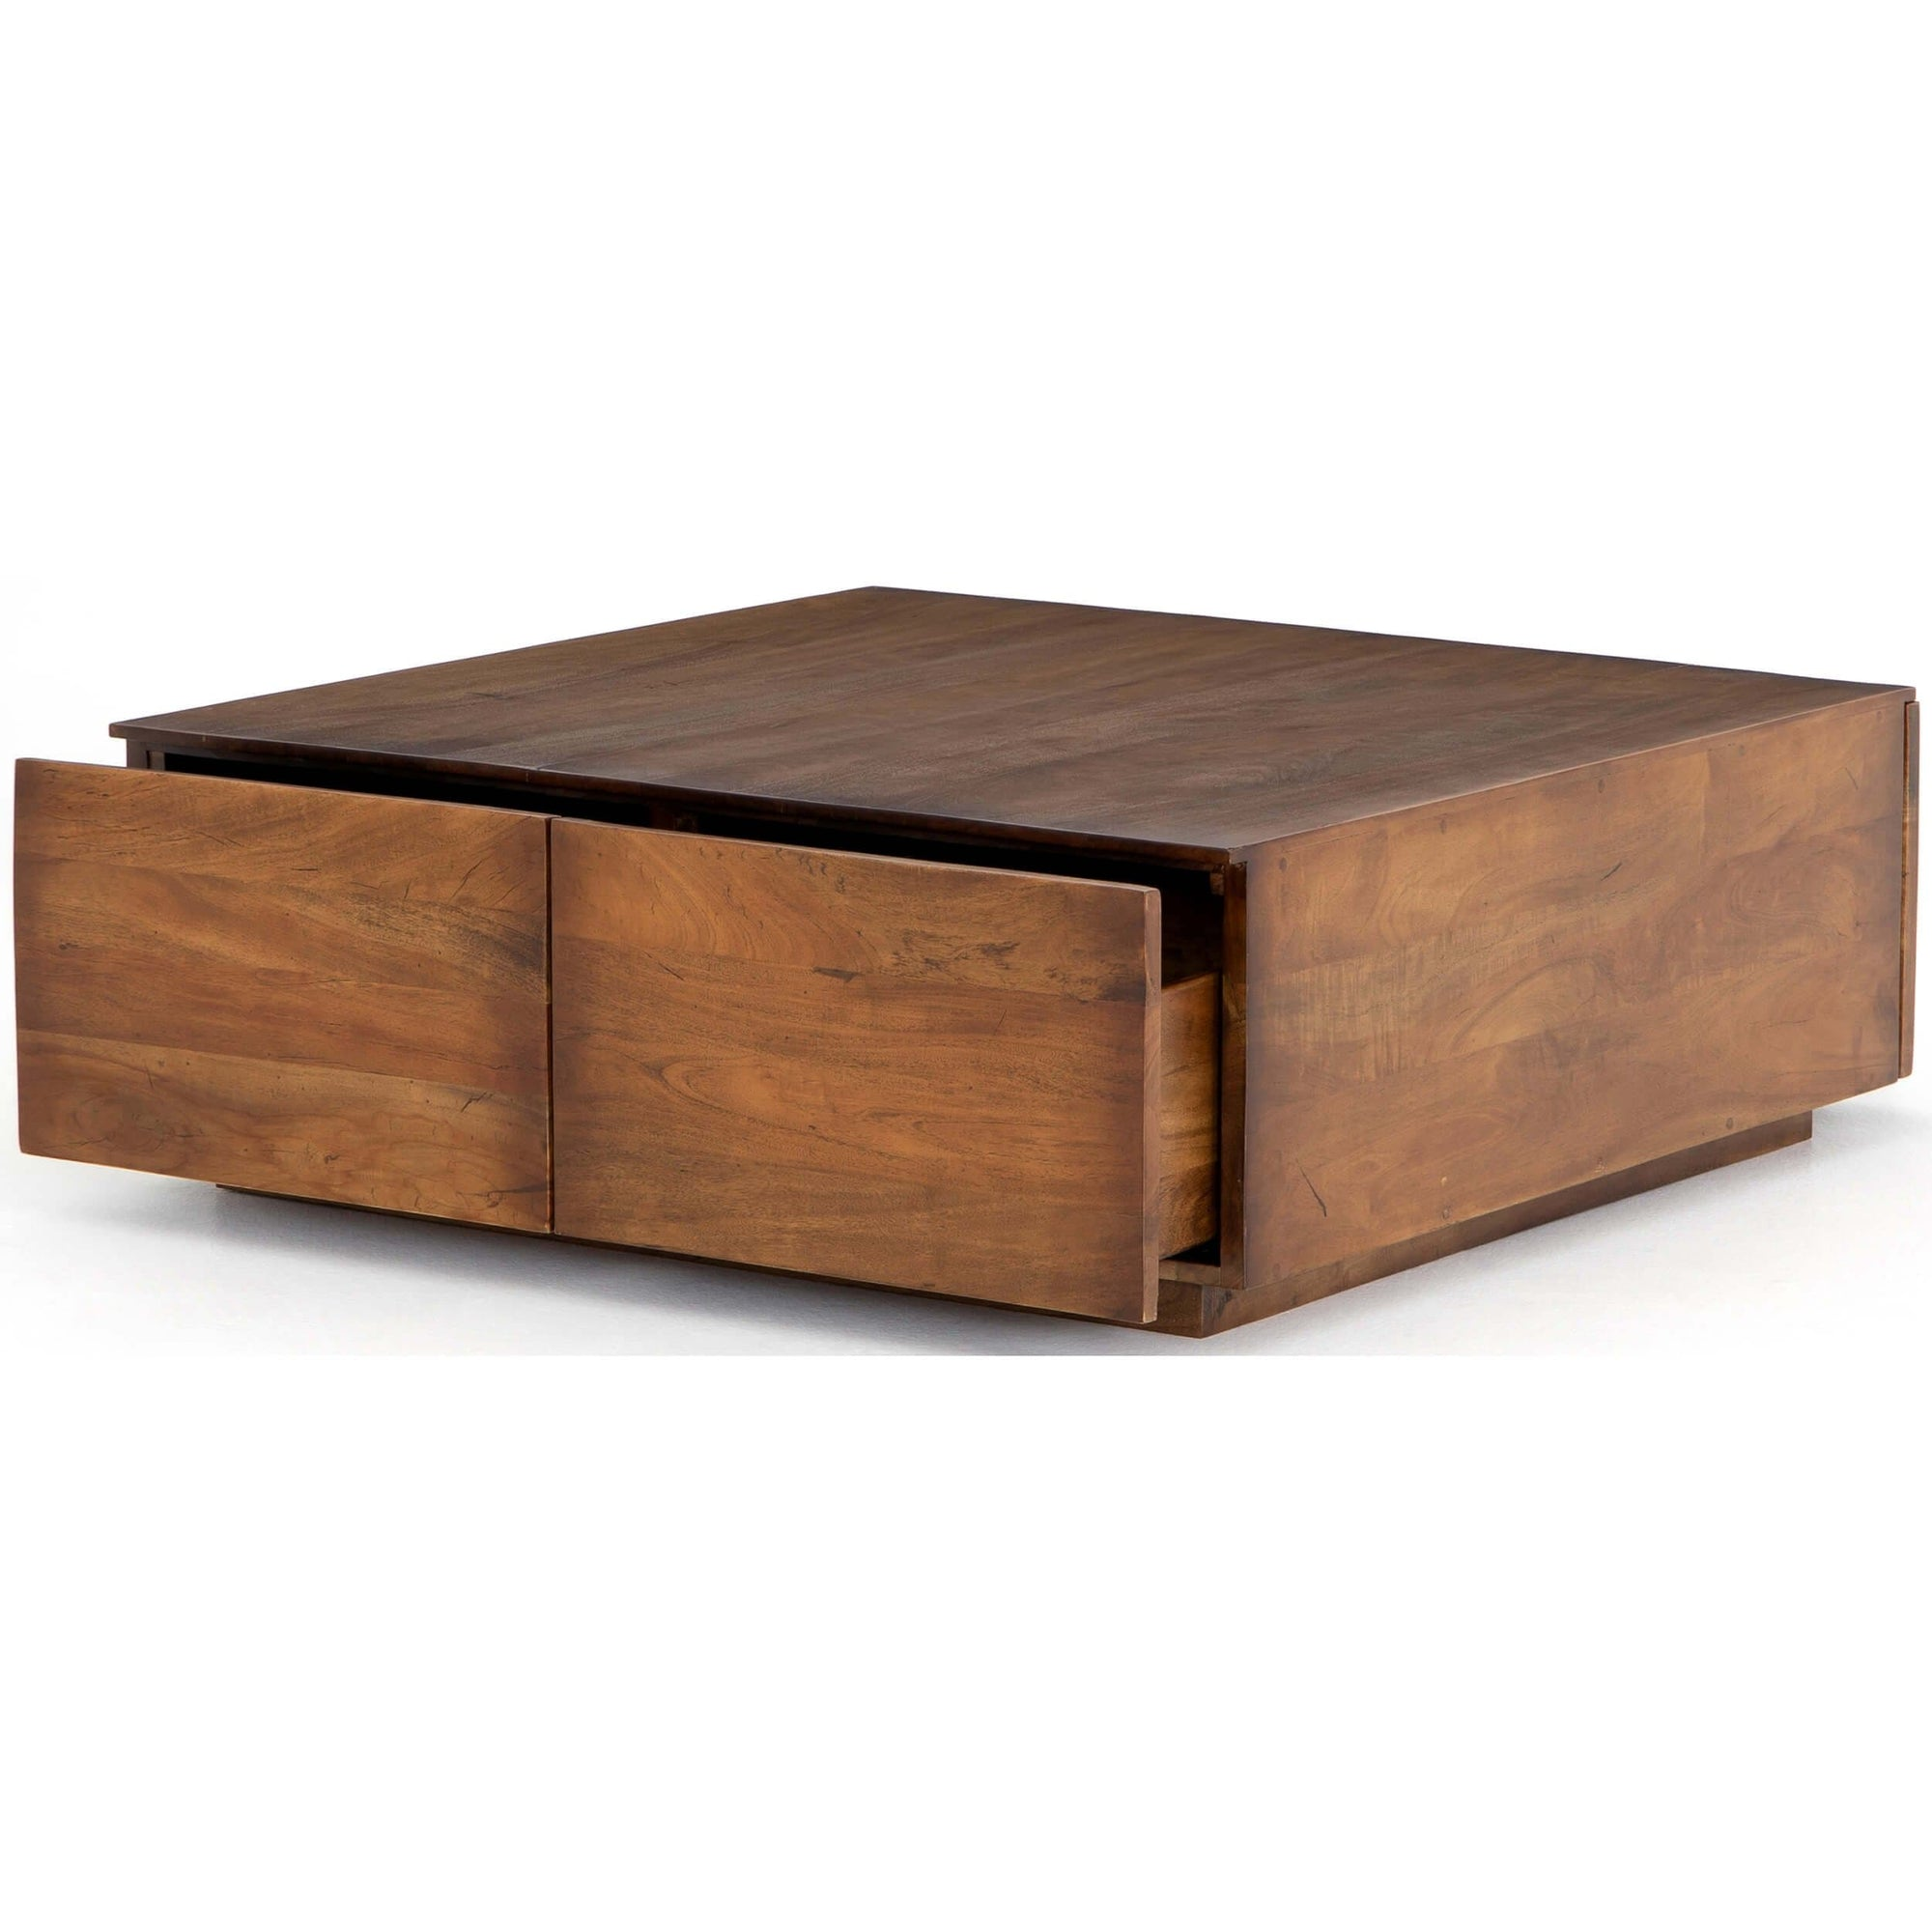 Duncan Storage Coffee Table Reclaimed Fruitwood High Fashion Home